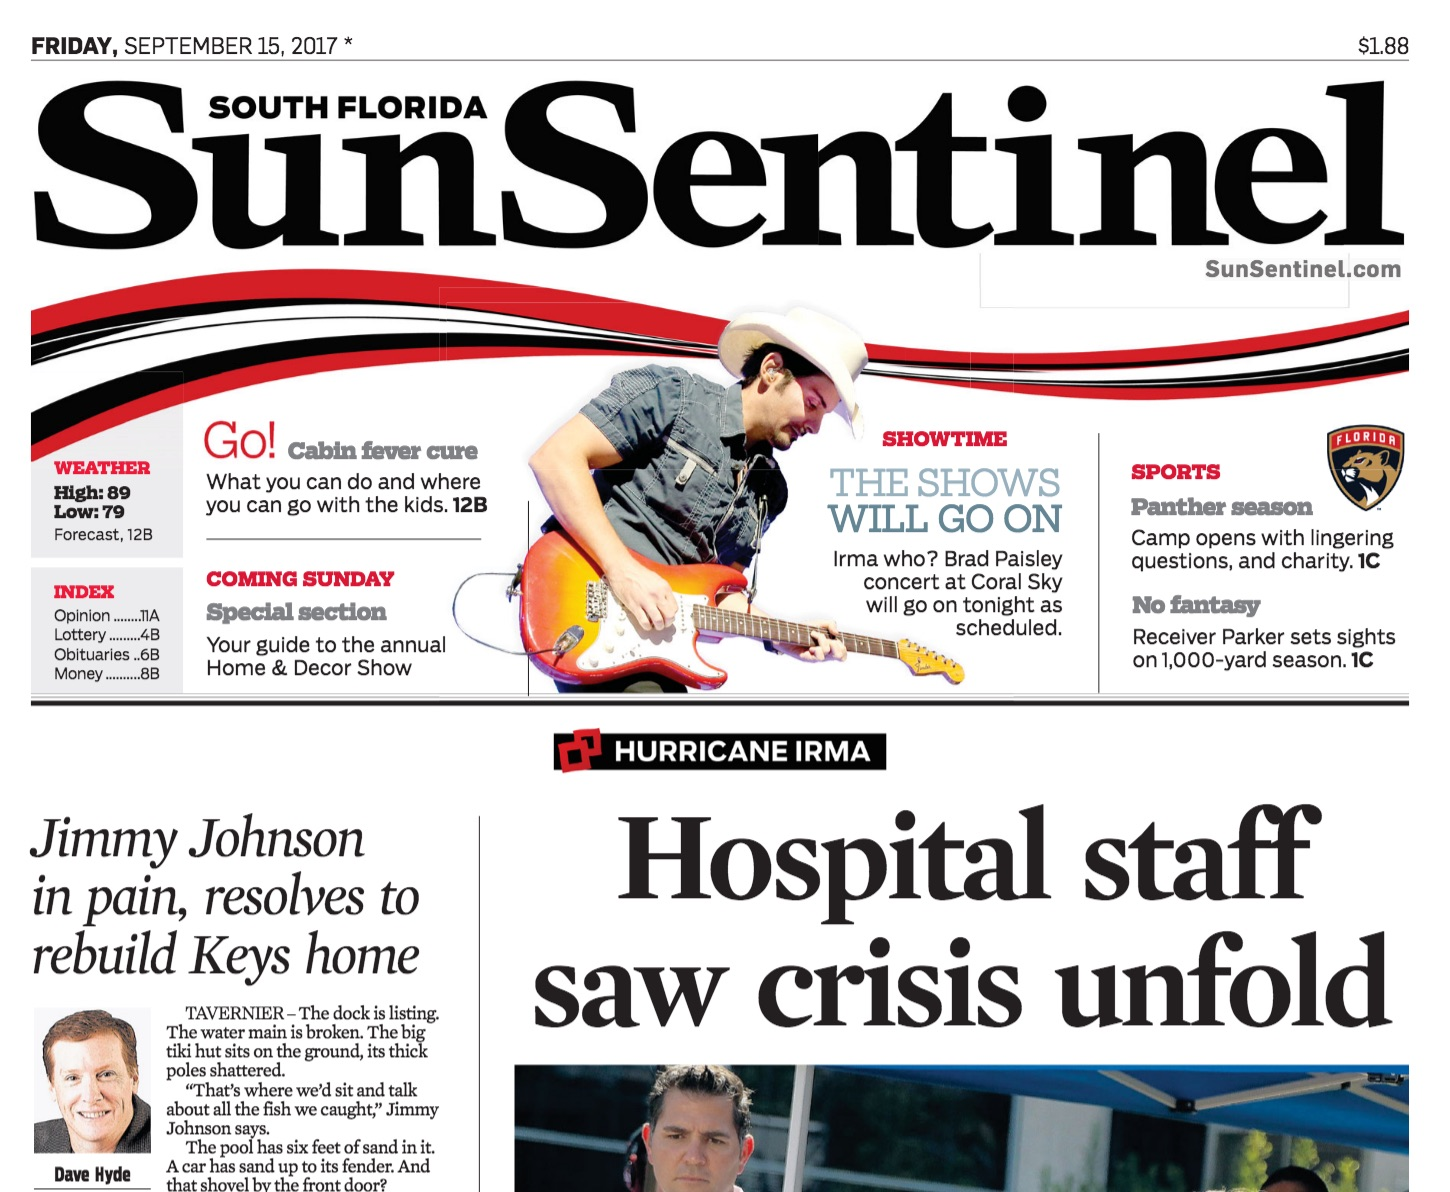 Become a Sun Sentinel digital subscriber today to read stories like this one. Start getting full access to the news that makes South Florida for just 99 cents for the first four weeks. Infections are mild in healthy people, but can quickly turn fatal in those with weakened immune systems.